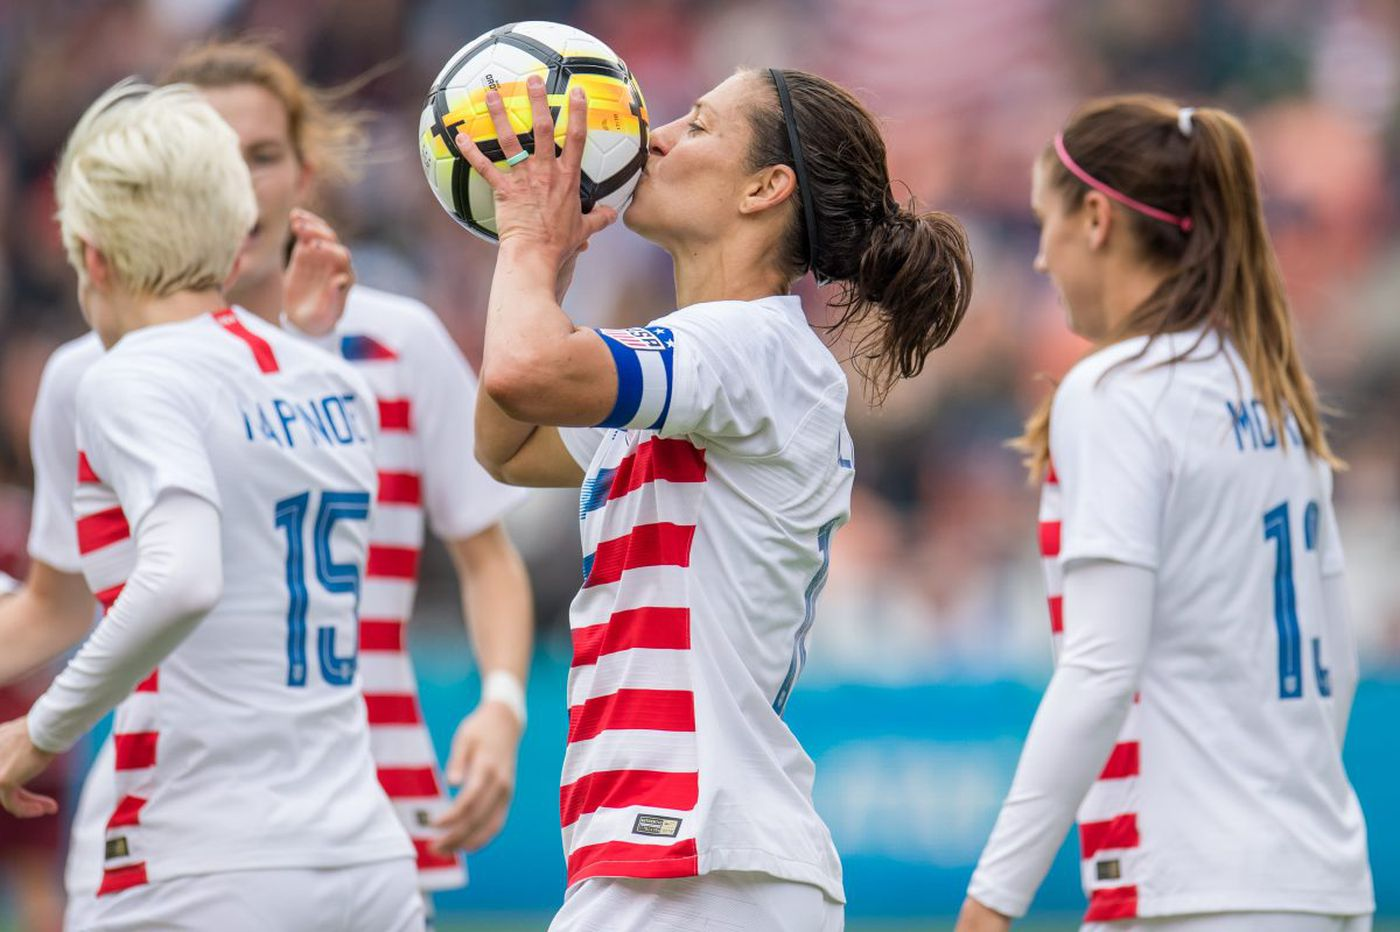 ac04526348d Carli Lloyd scores 100th goal for U.S. women's soccer team in 6-2 win over  Mexico